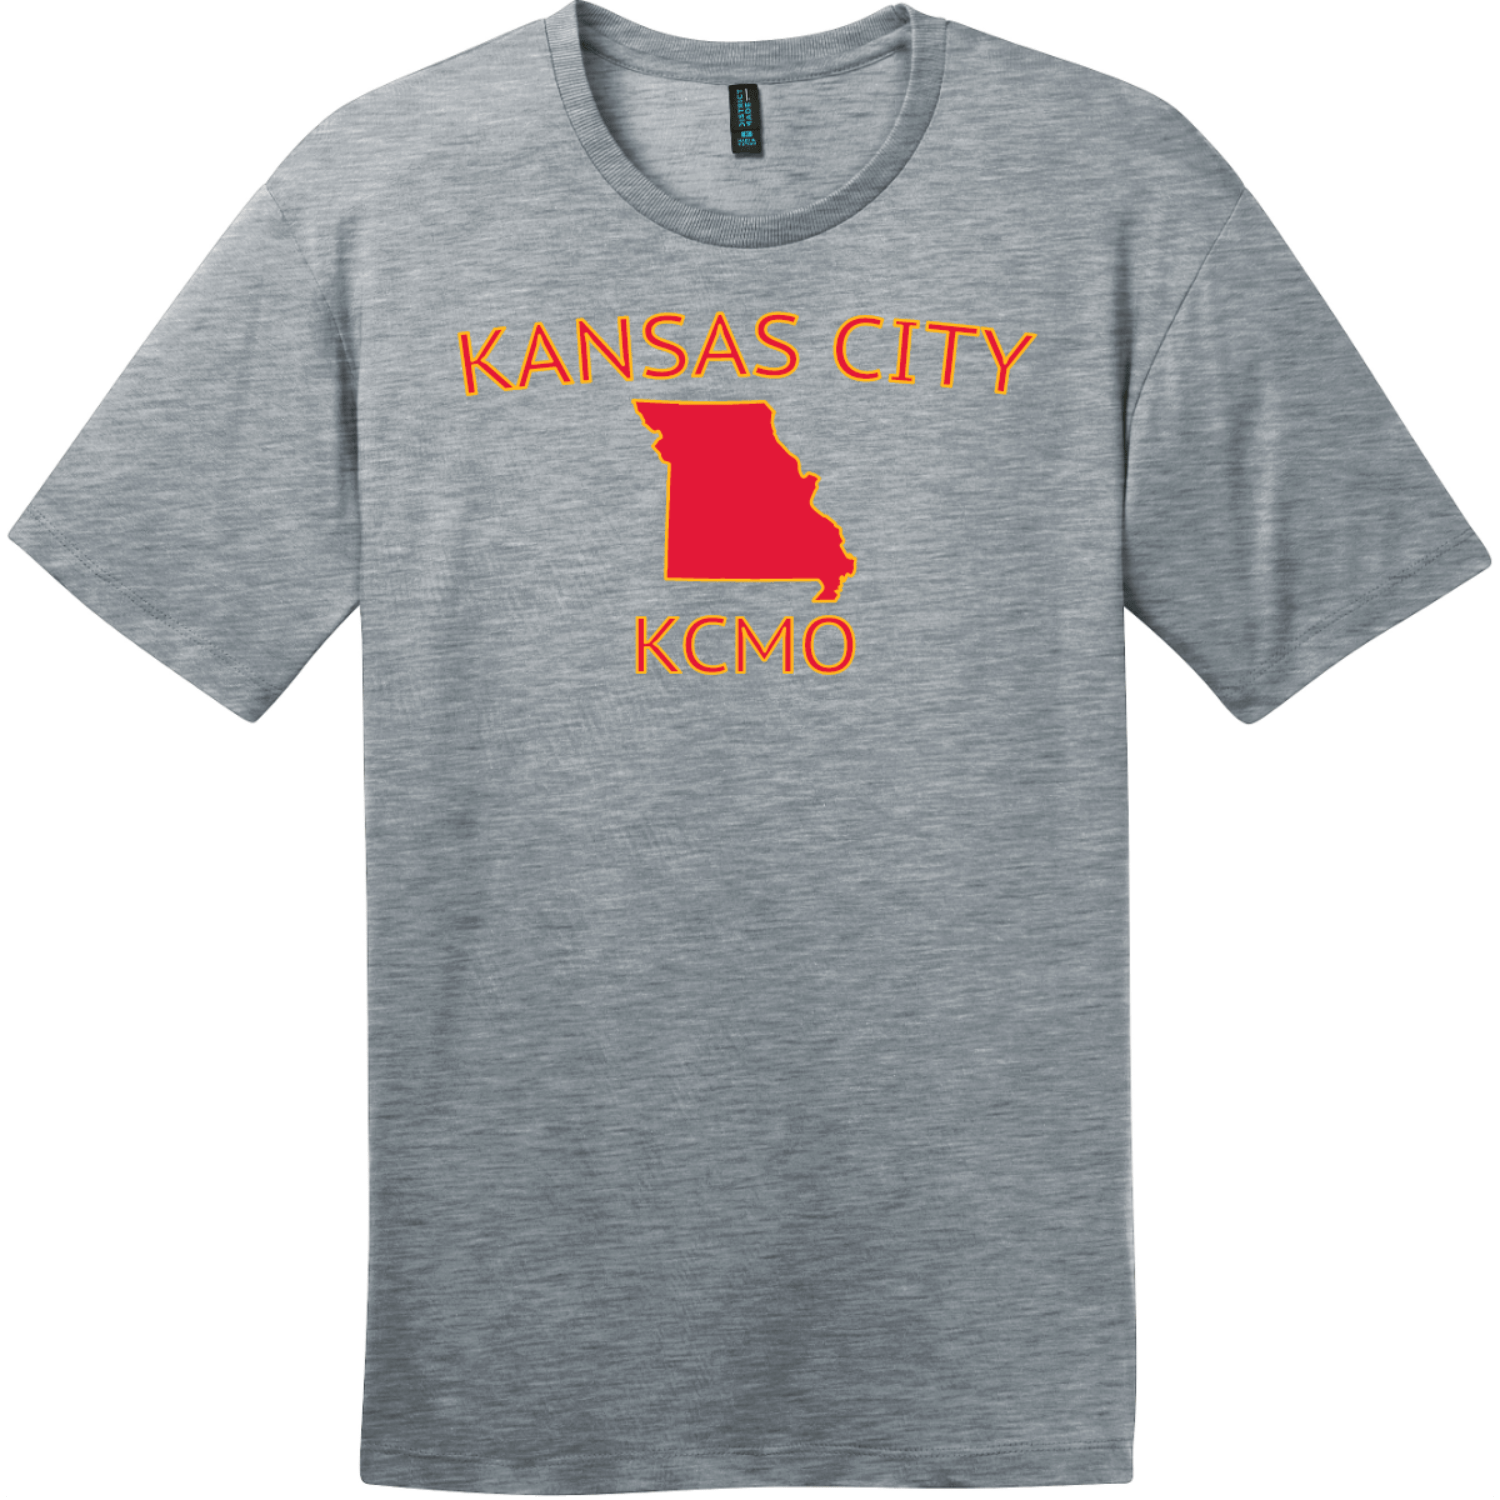 Kansas City KCMO T-Shirt Heathered Steel District Perfect Weight Tee DT104